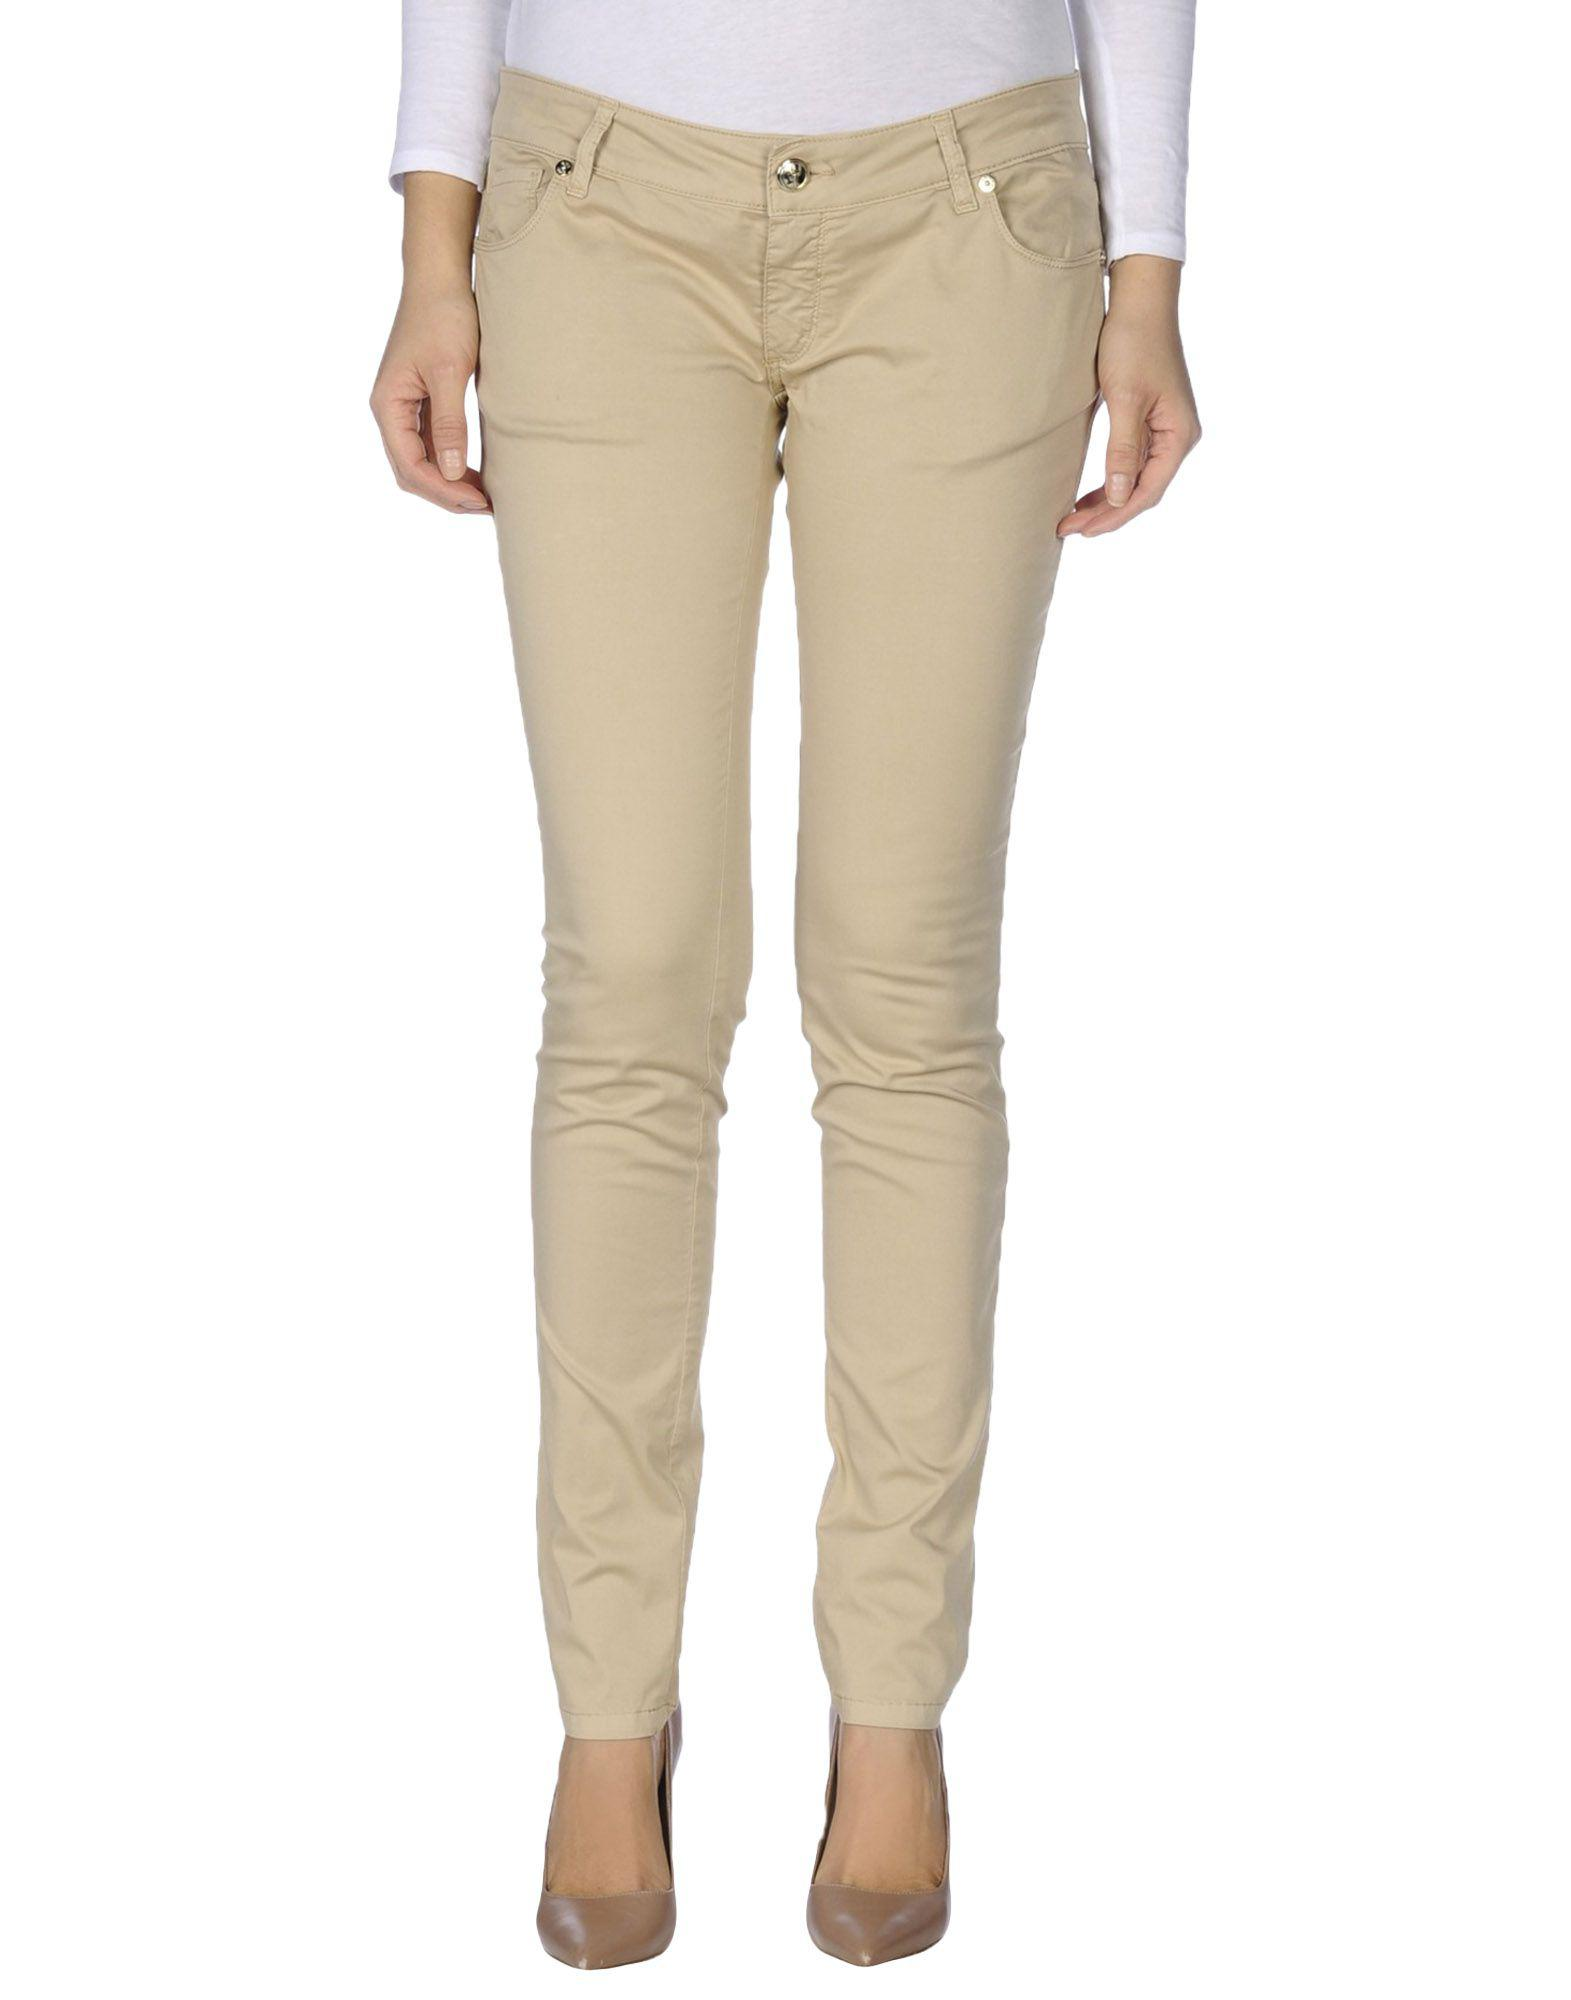 TROUSERS - Casual trousers Cesare Paciotti 2018 New For Sale zCTIUEdgW